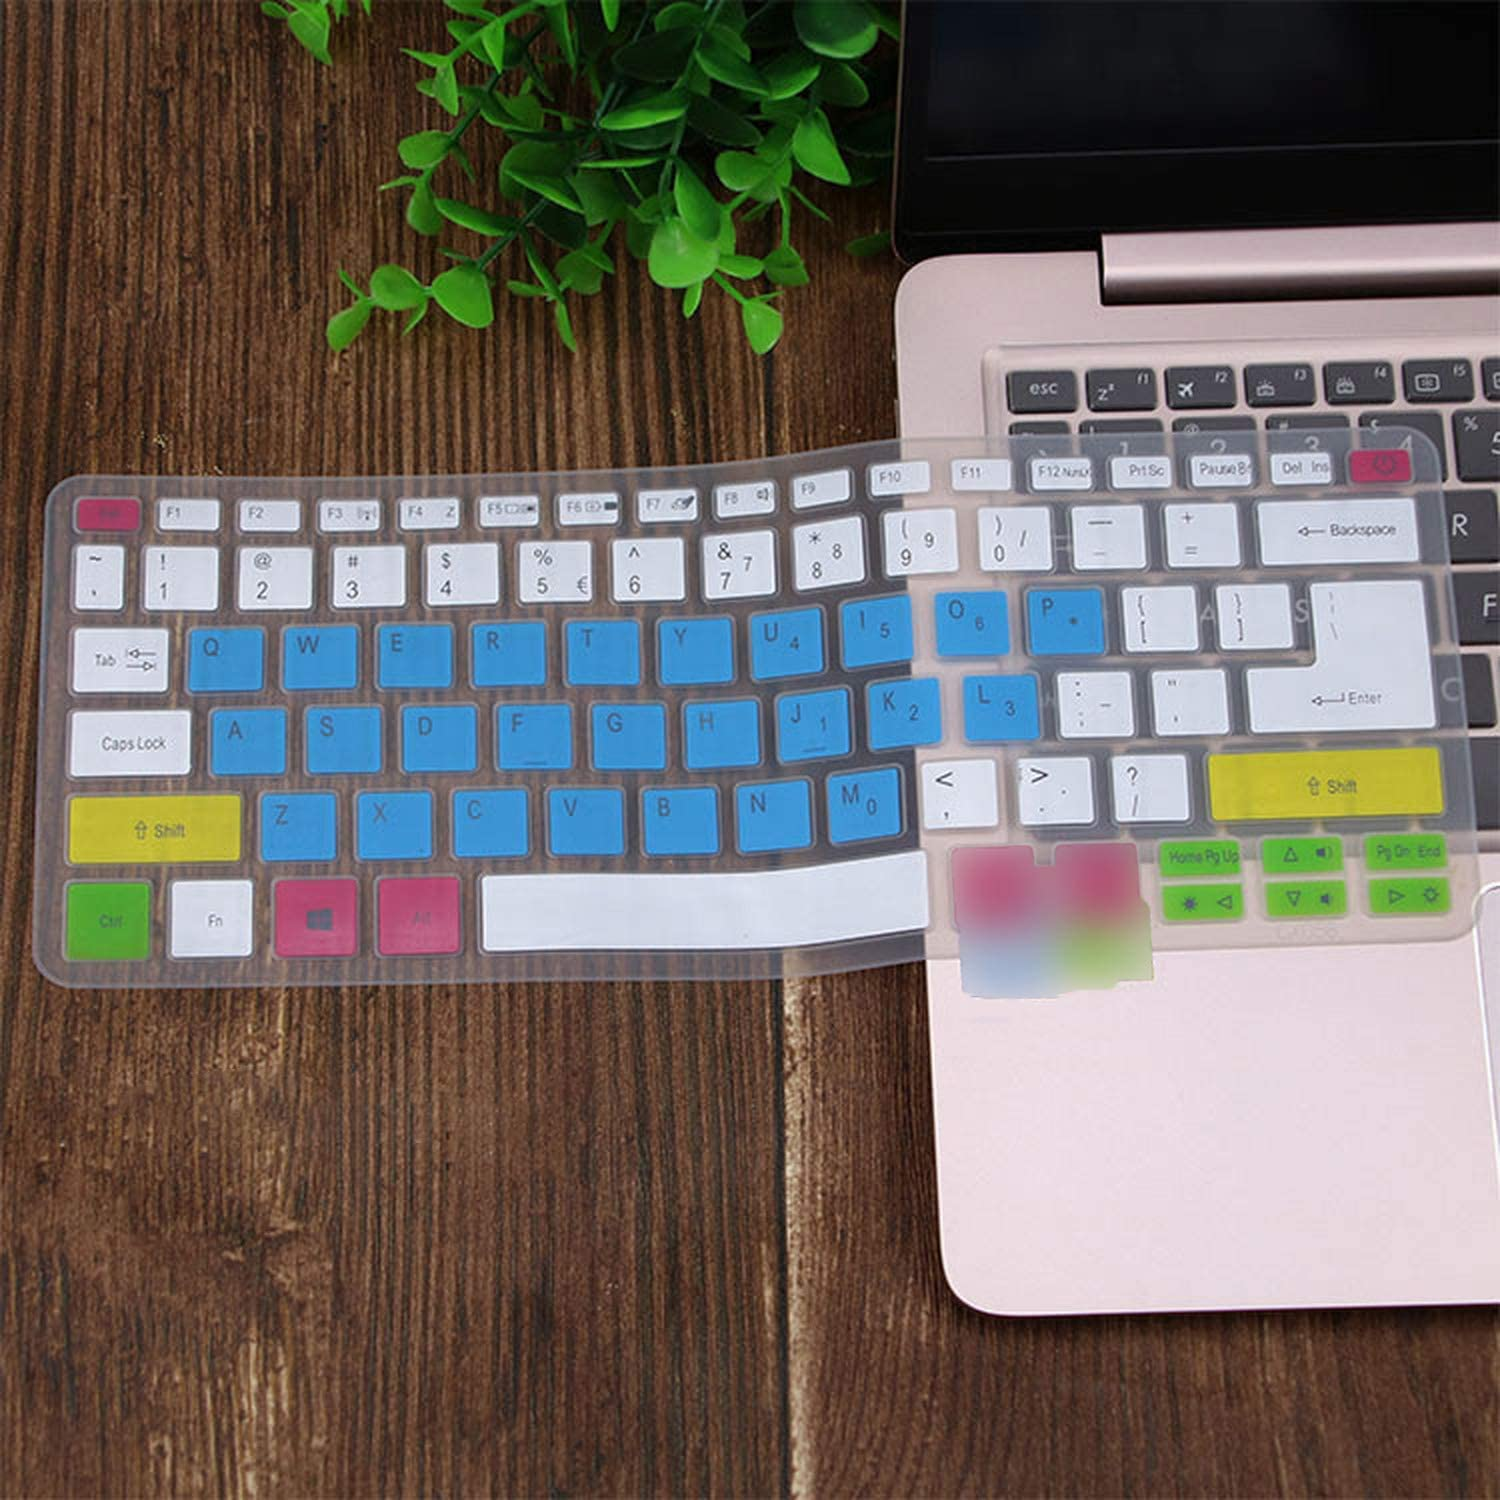 for Acer Swift SF113 S5 371 SF514 SF5 Swift 5 Swift 3 Aspire S13 14 SF314 Spin 5 13.3 Laptop Keyboard Cover Skin Protector-Color 2